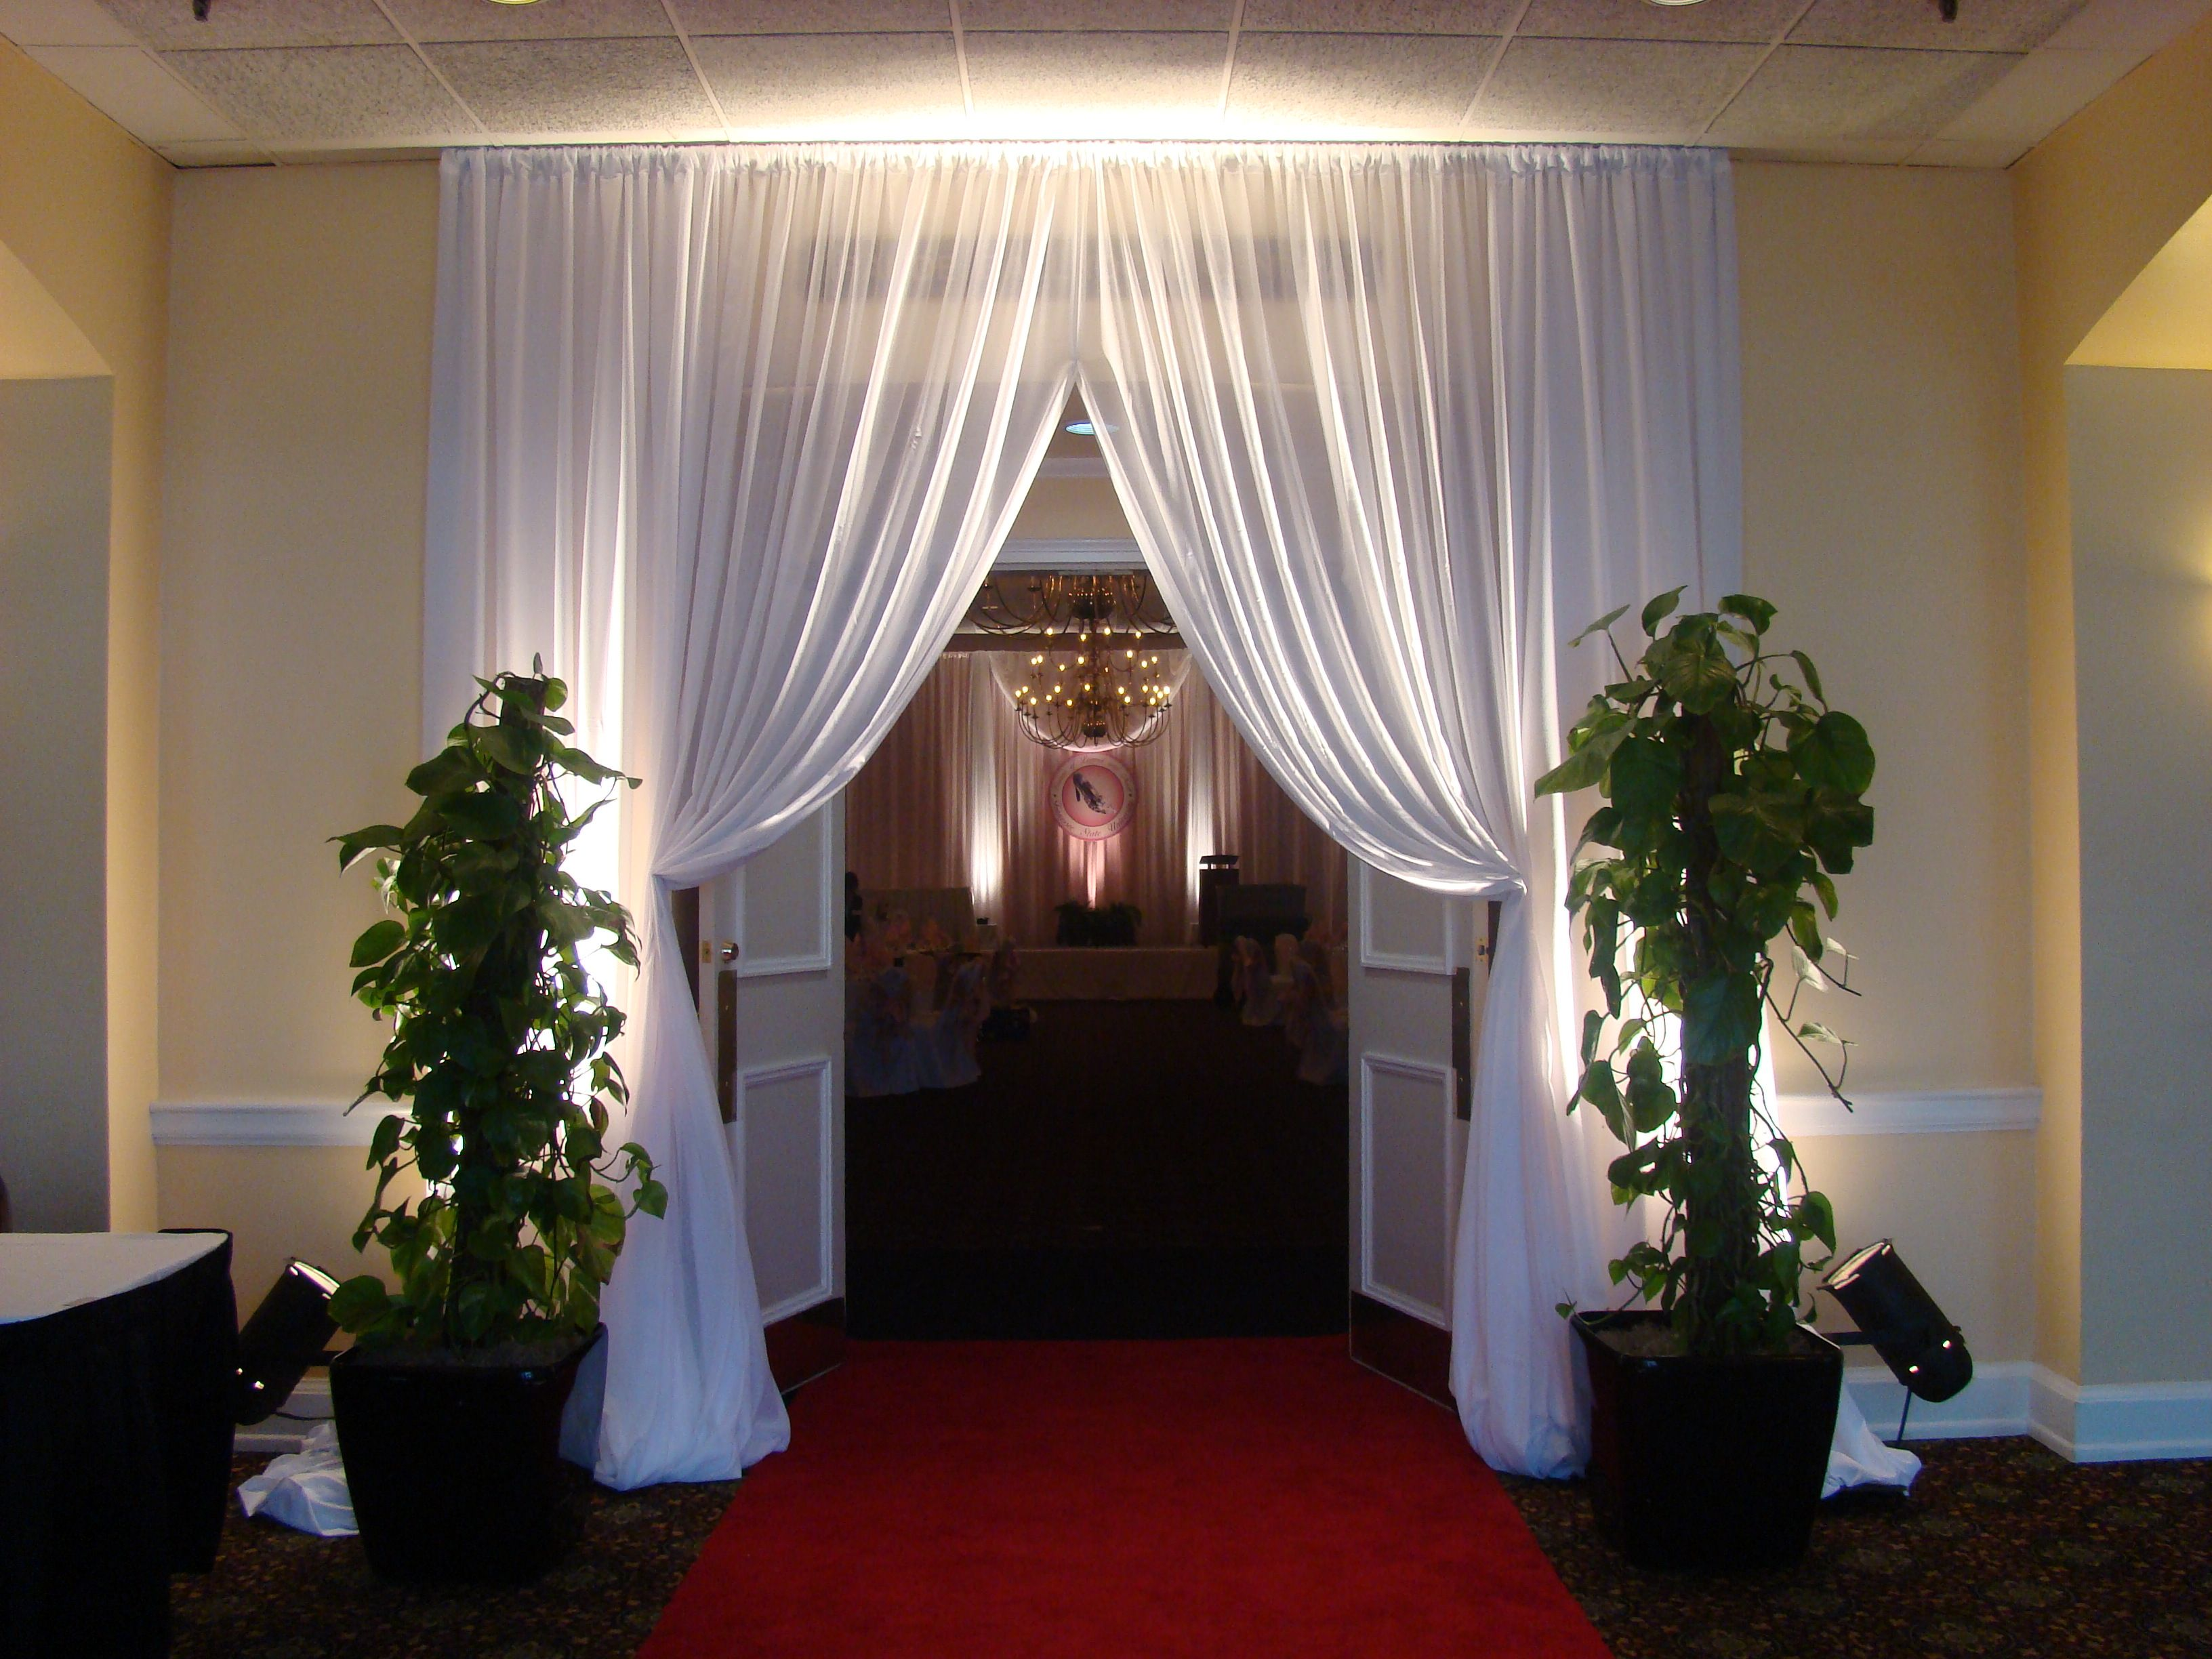 Church Sanctuary Entry Door Draping Option 10 22 2016